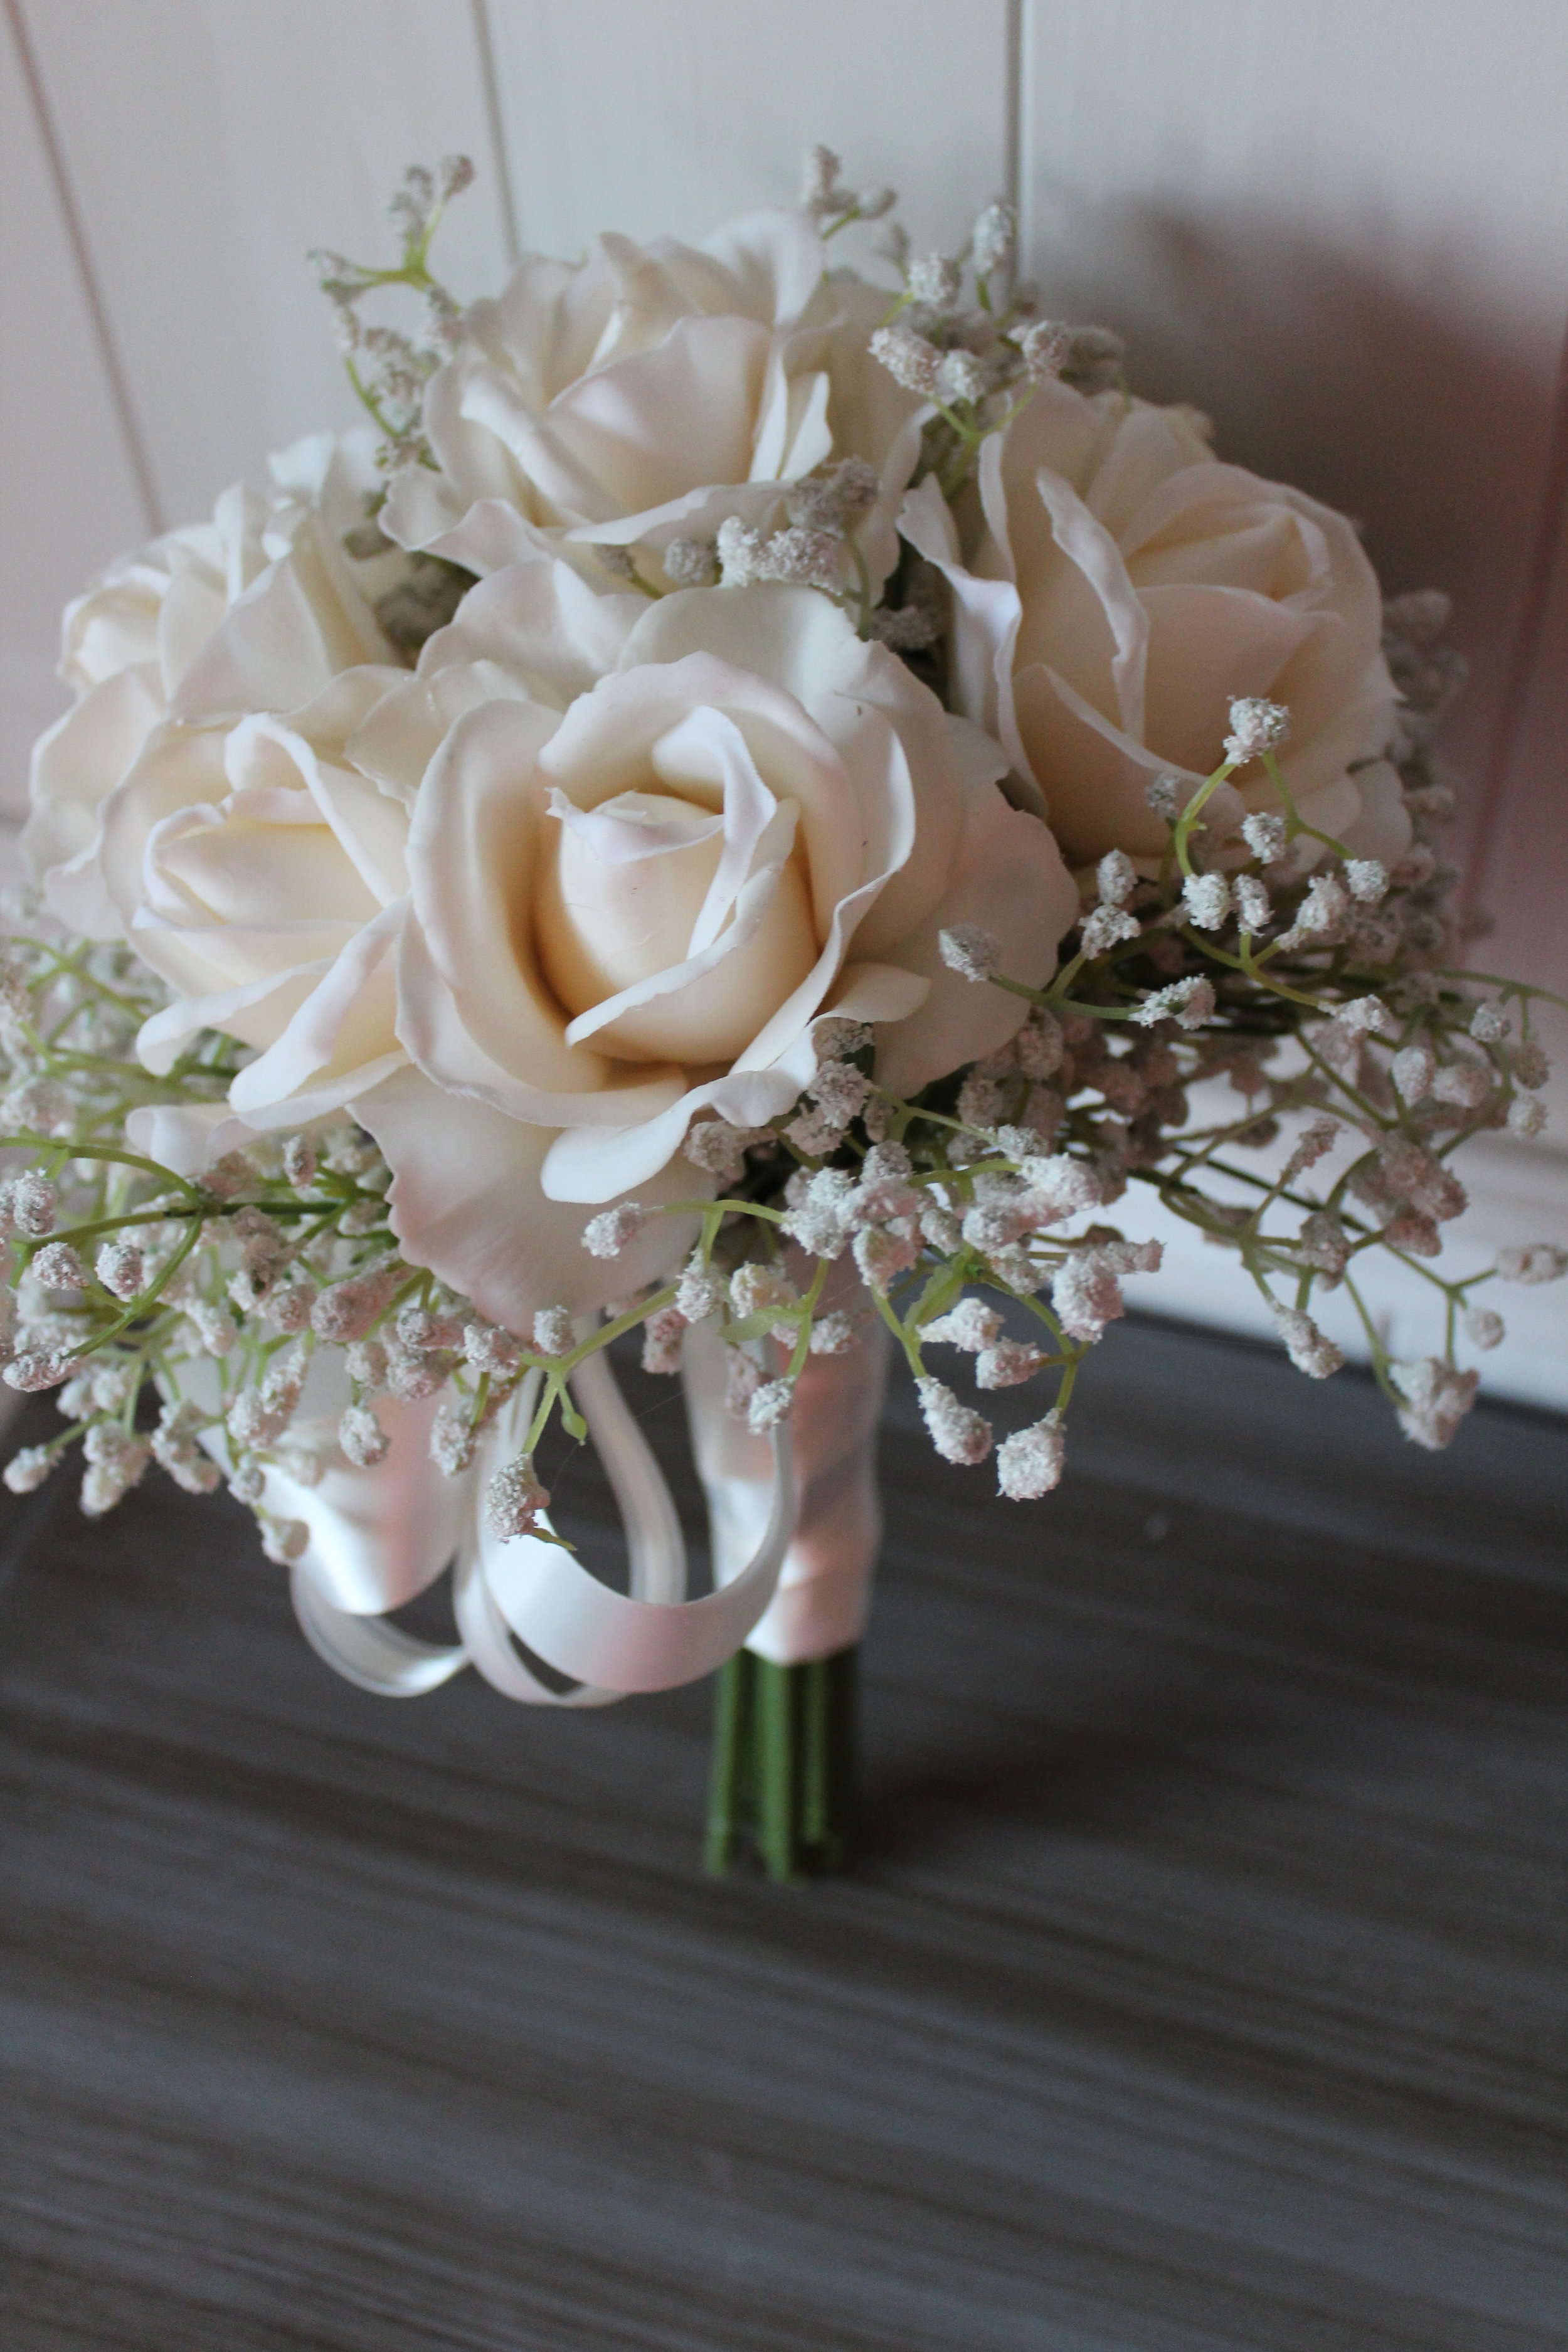 Bridal bouquet recreated in silk flowers.